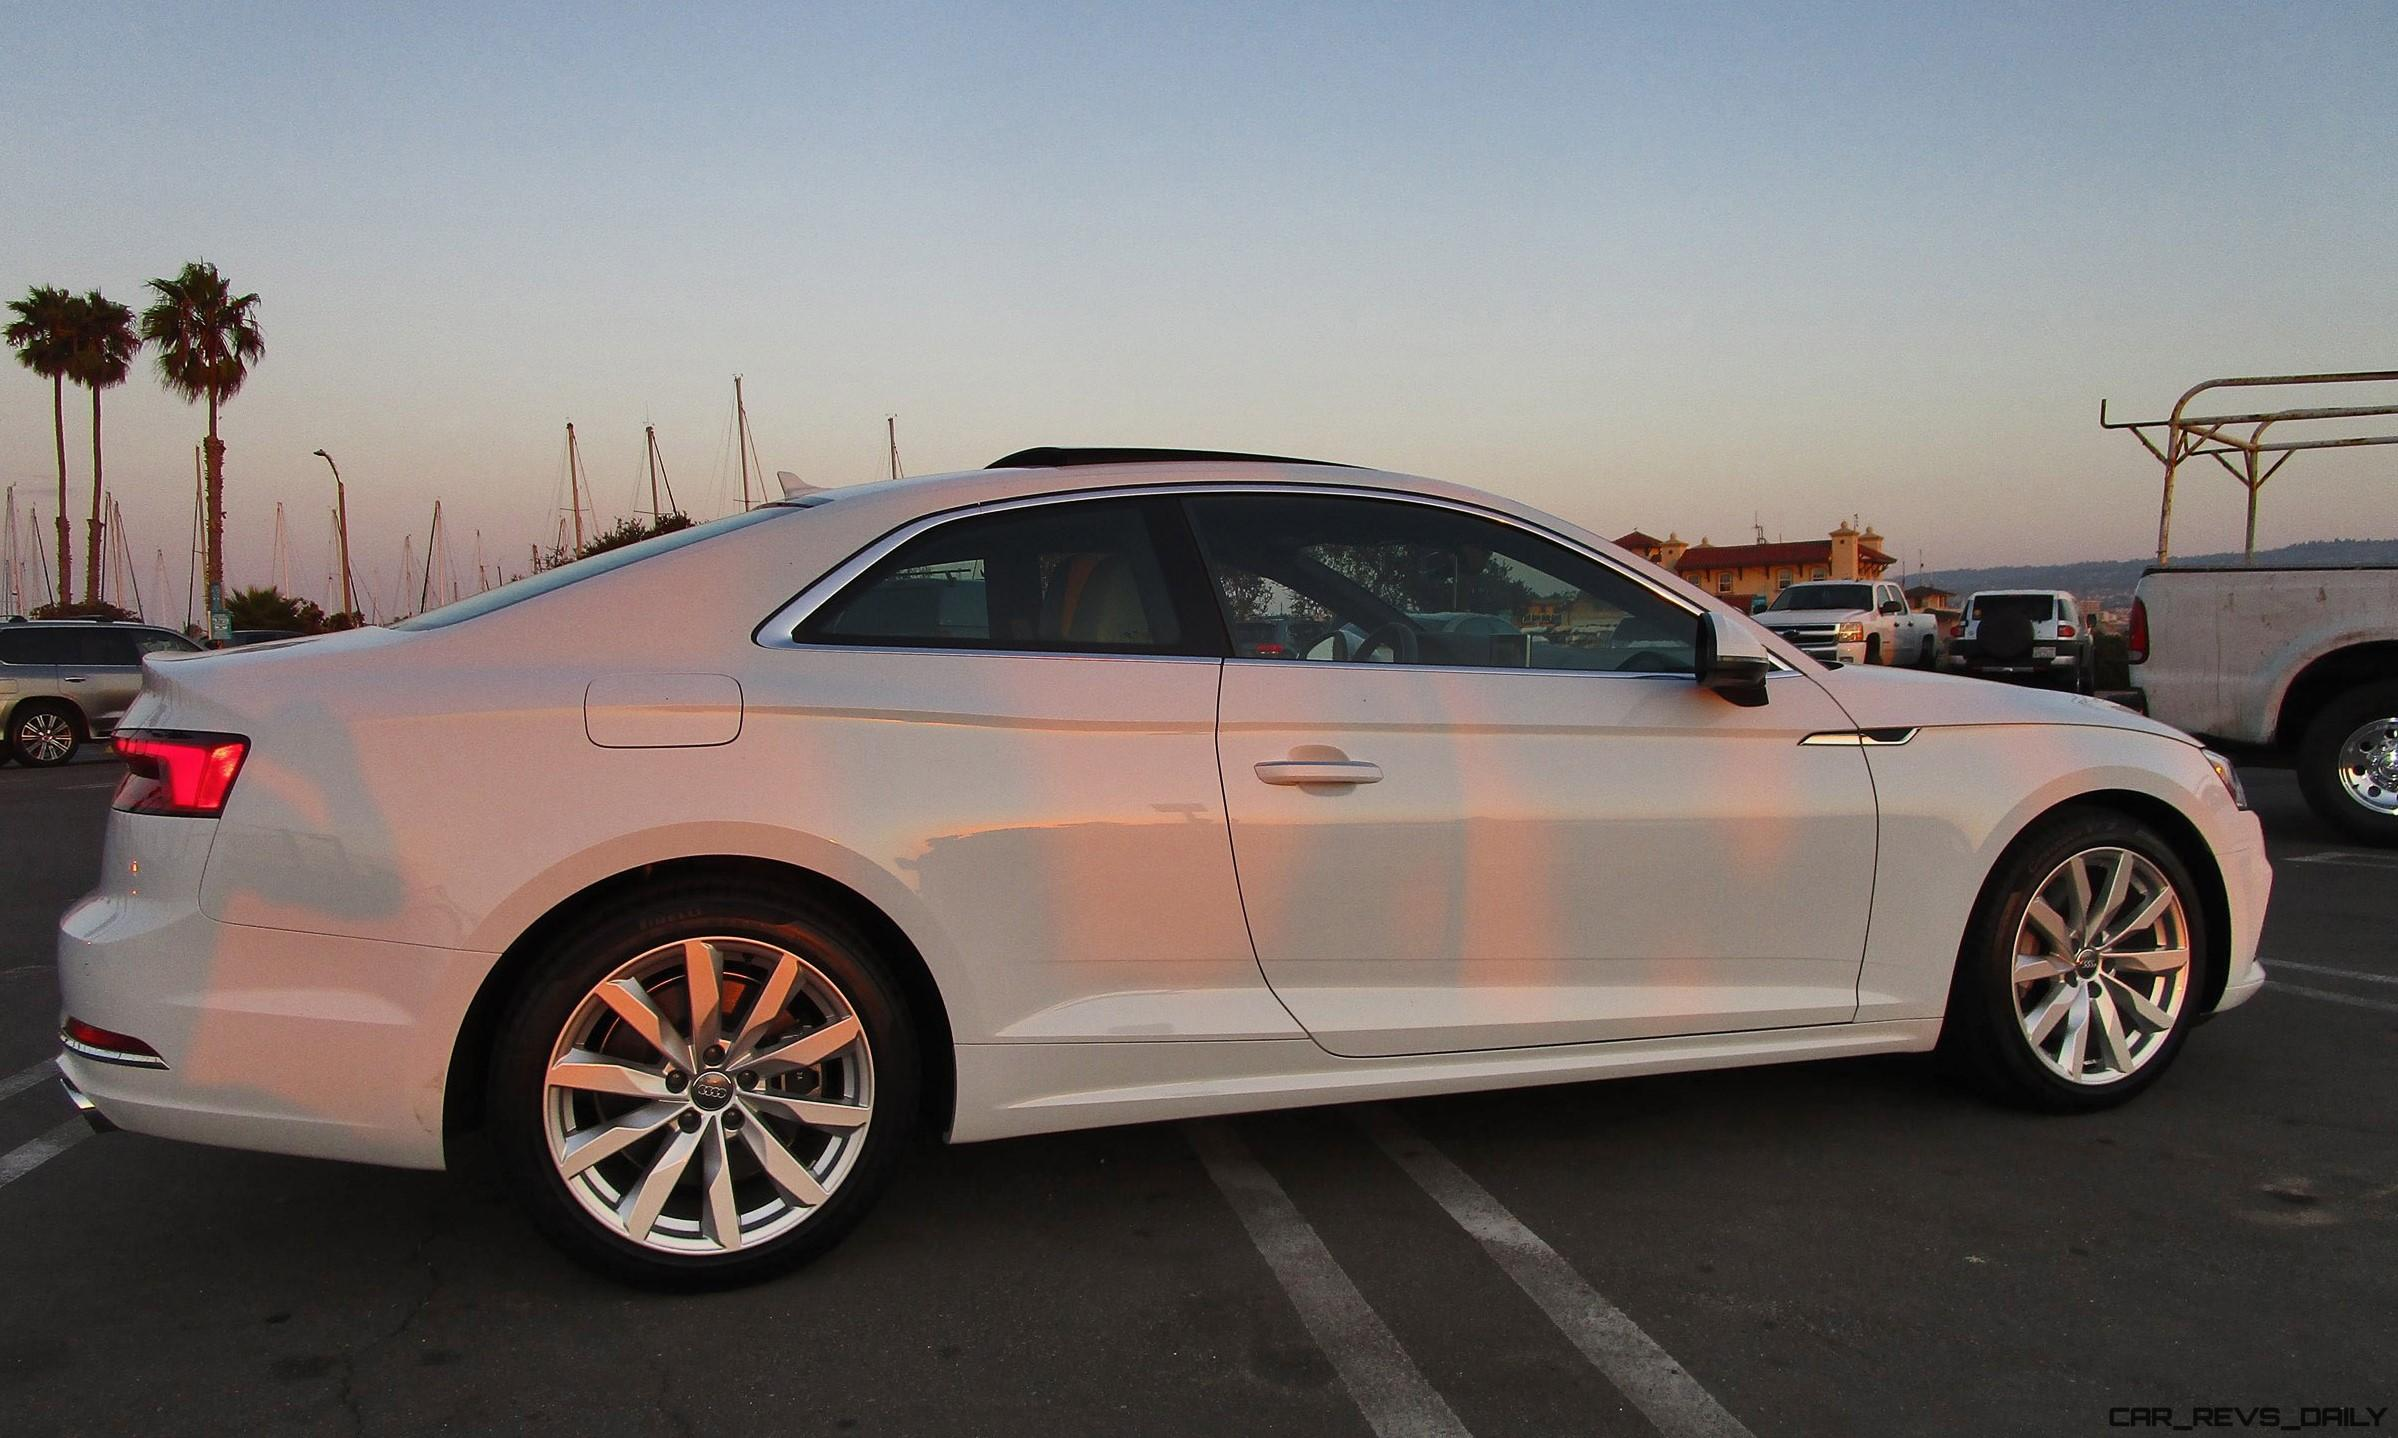 Audi A Coupe T Quattro S Tronic Road Test Review By - Audi 5 car